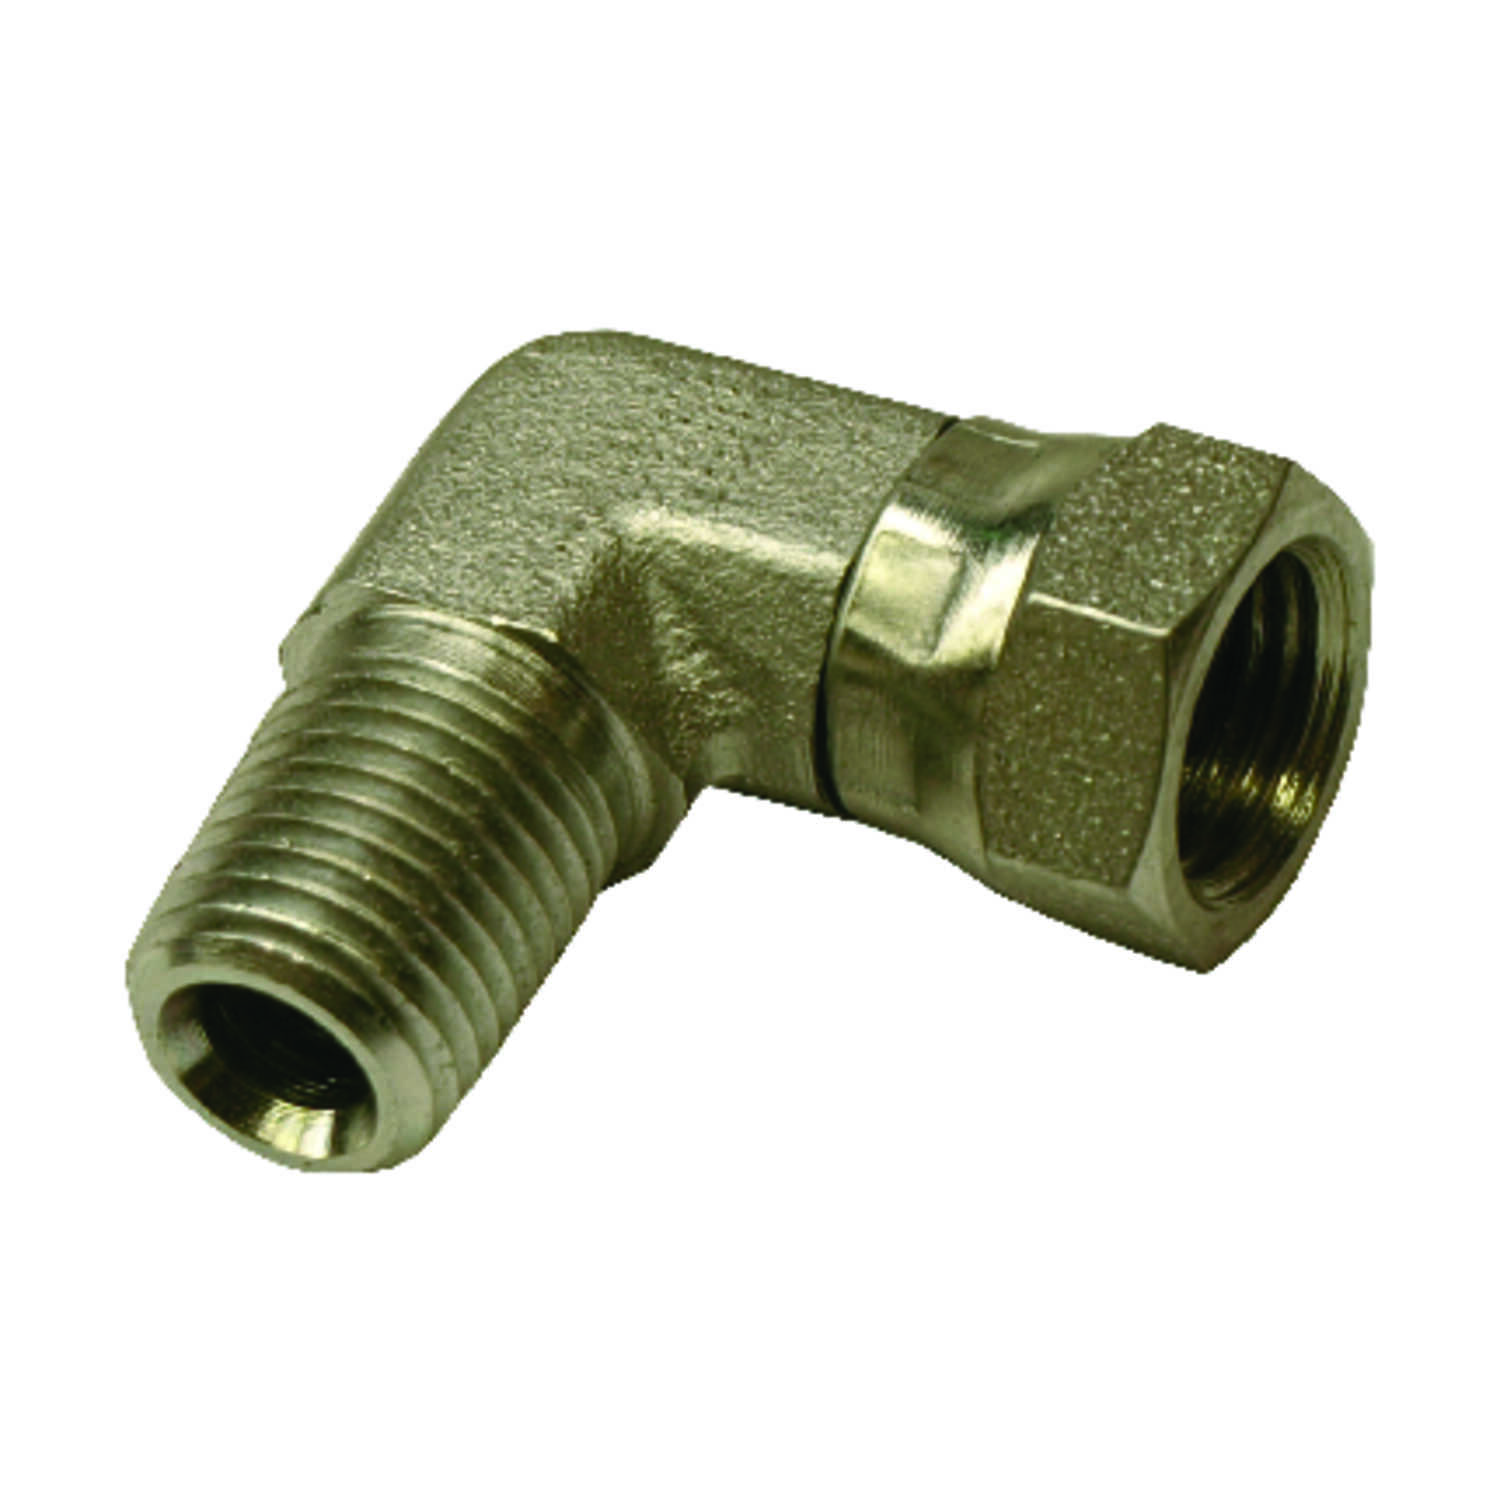 Universal  Brass  Hydraulic Adapter  3/8 in. Dia. x 3/8 in. Dia. 1